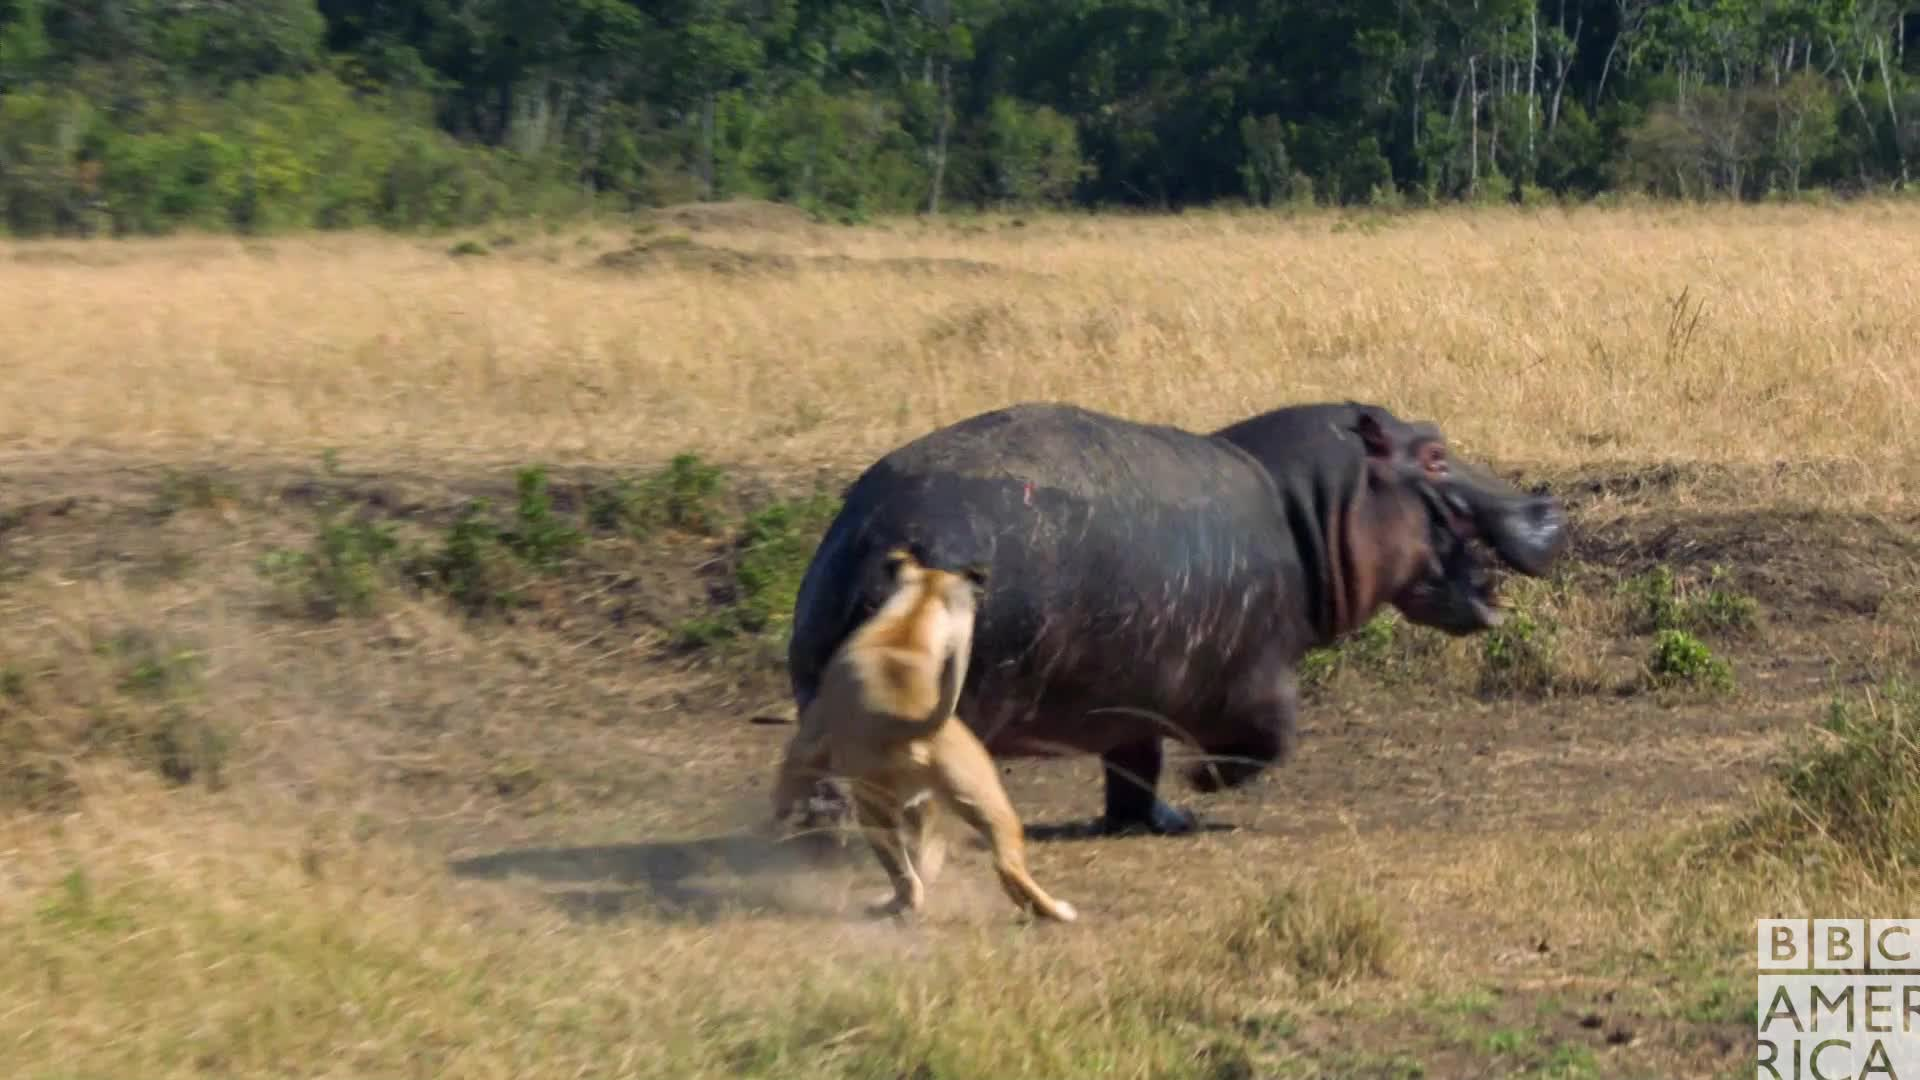 angry, animal, animals, annoyed, bbc america, bbc america: dynasties, dynasties, gtfo, hate, hippo, hippopotamus, lion, lions, Dynasties Angry Hippo GIFs